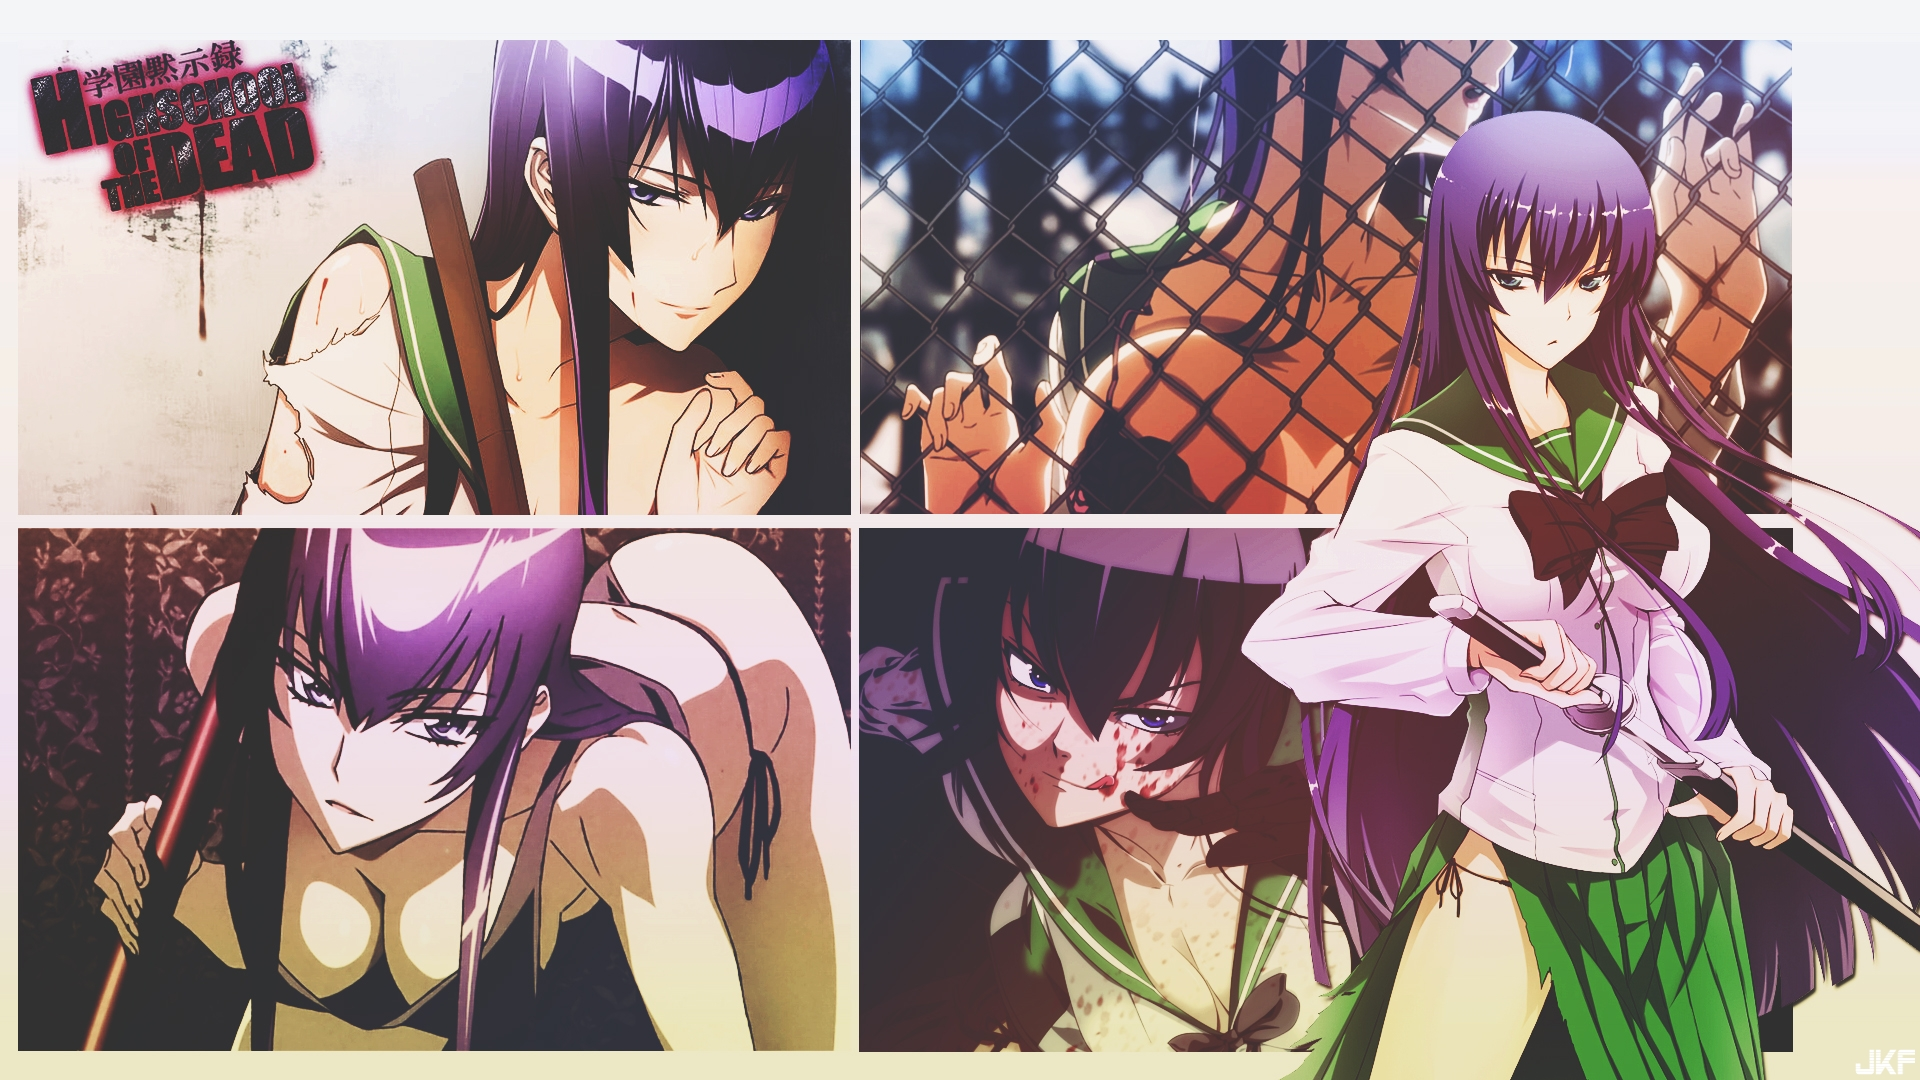 saeko_wallpaper_by_dinocojv-d9xitca.jpg